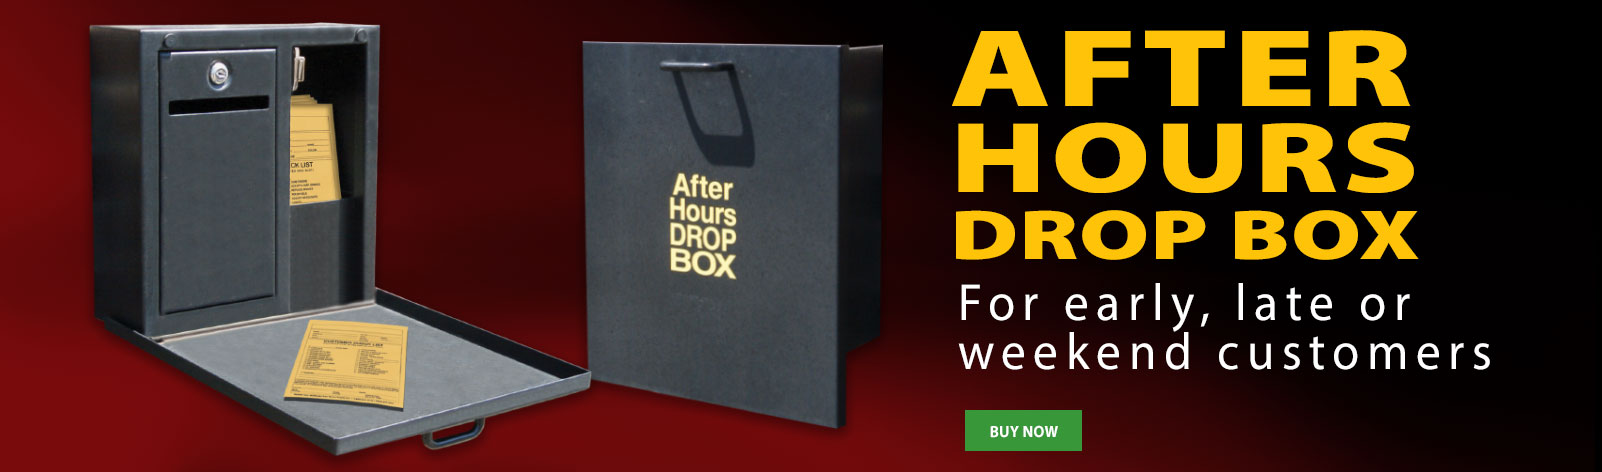 After Hours Drop Box - For weekend or late customers.